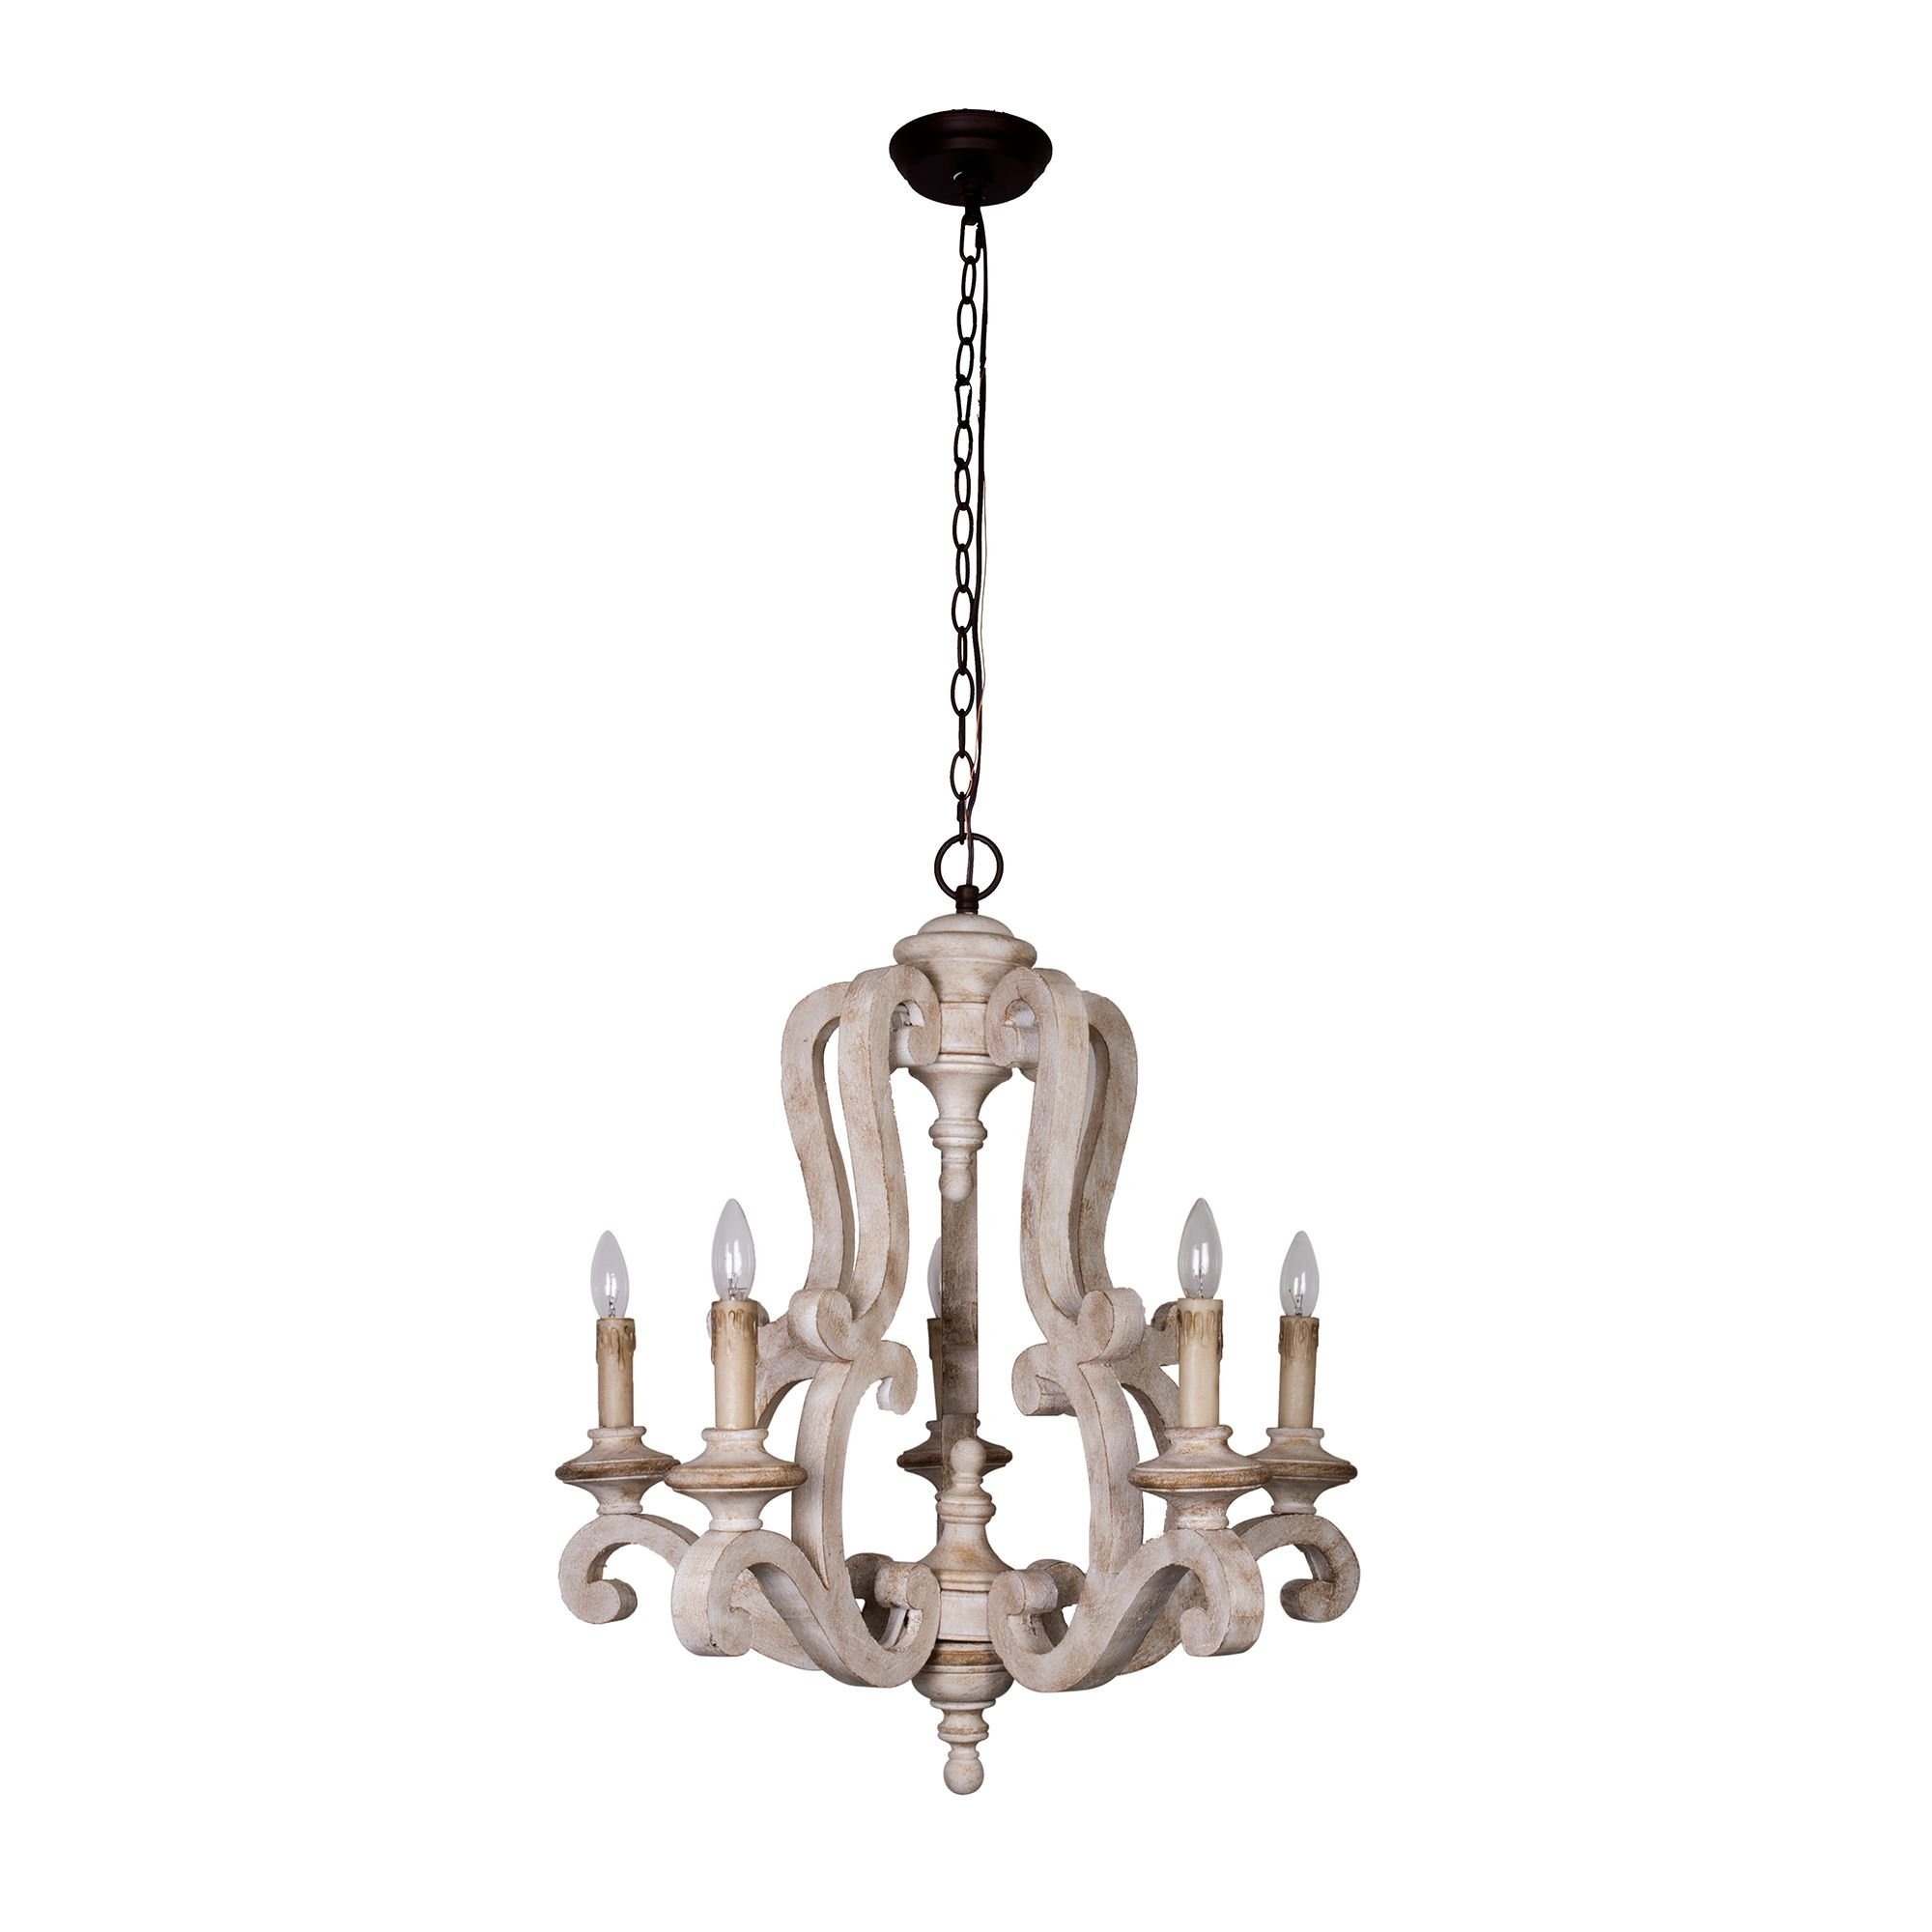 Antique Wooden Chandelier with Candle Bulbs 5 Lights Vintage Farmhouse Pendant Ceiling Lighting, 39 Inch Adjustable Chain, Beige